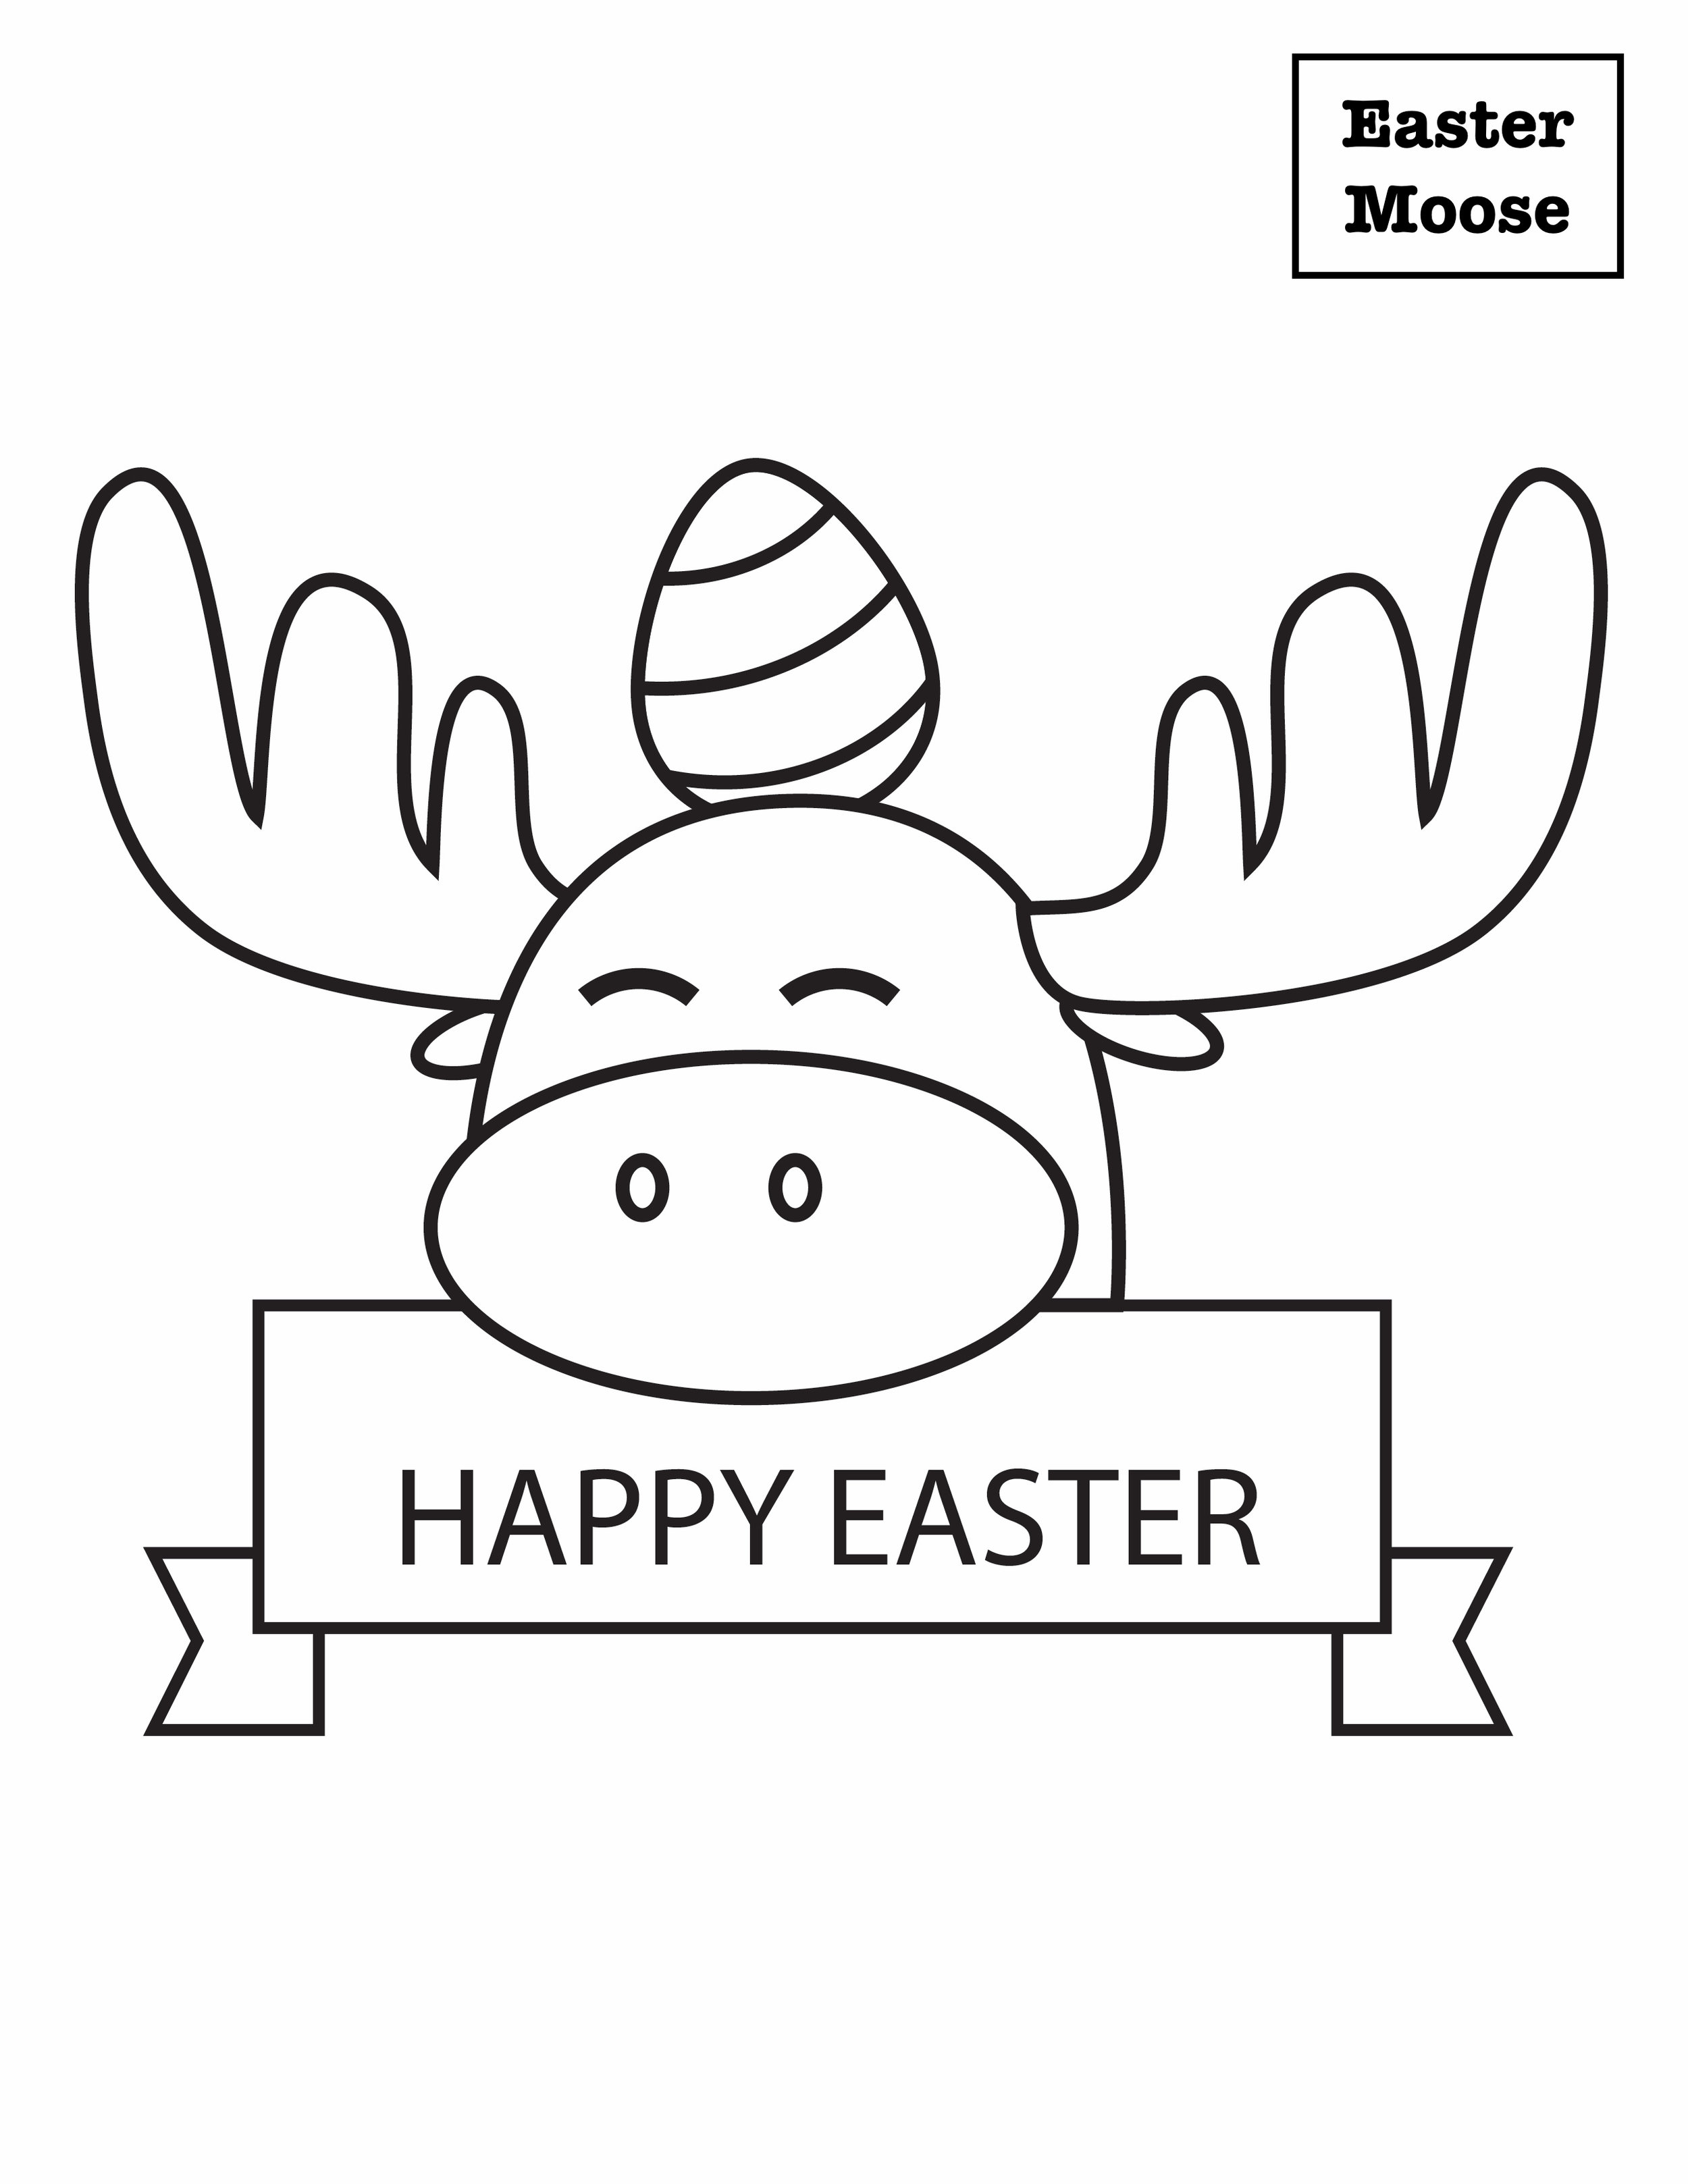 Easter Moose with Tag.jpeg